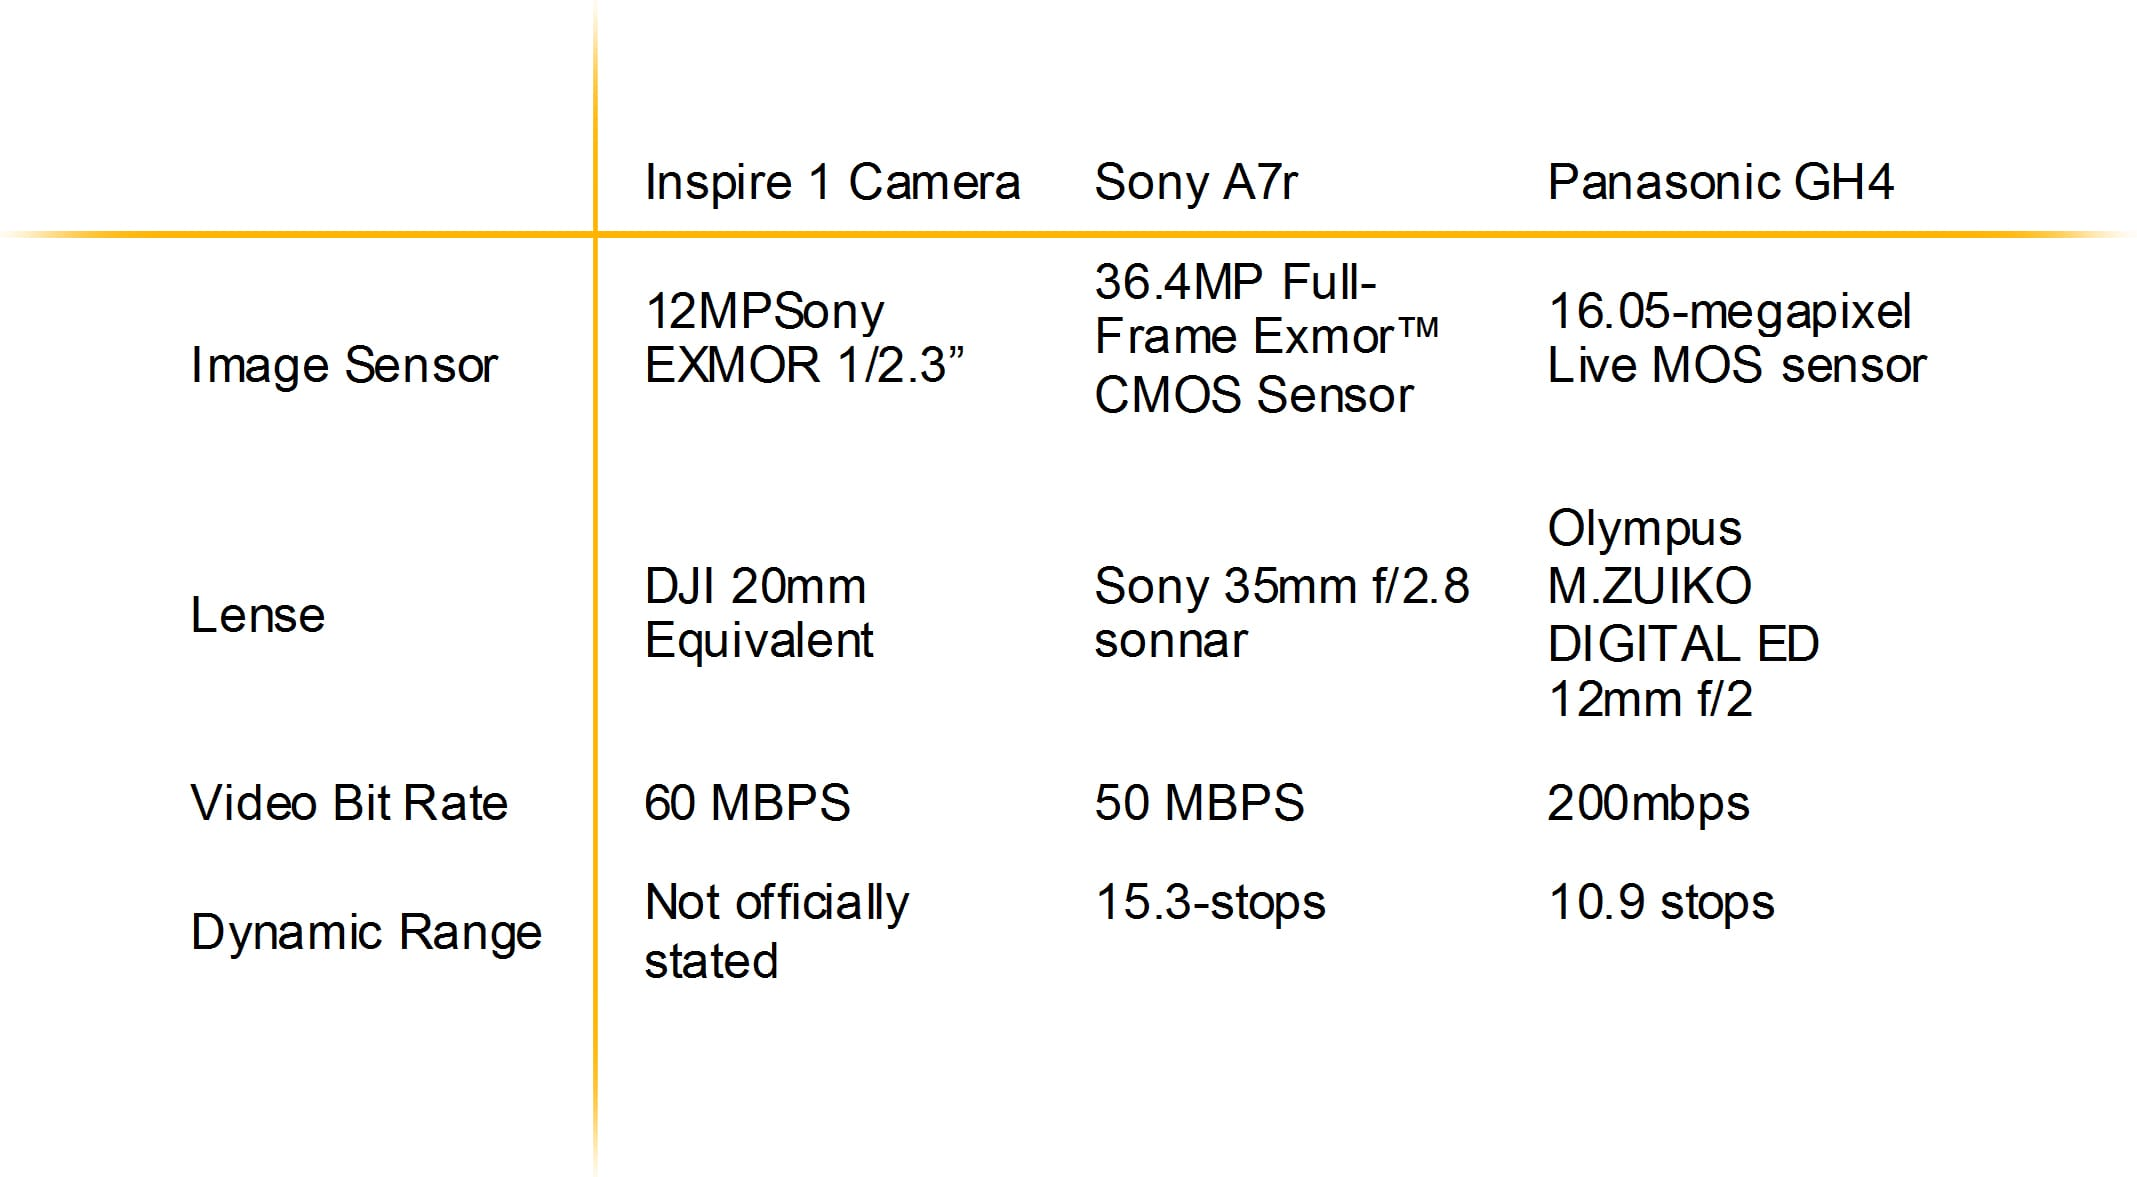 DJI Inspire 1 camera compared to Sony A7R and the Panasonic GH4.